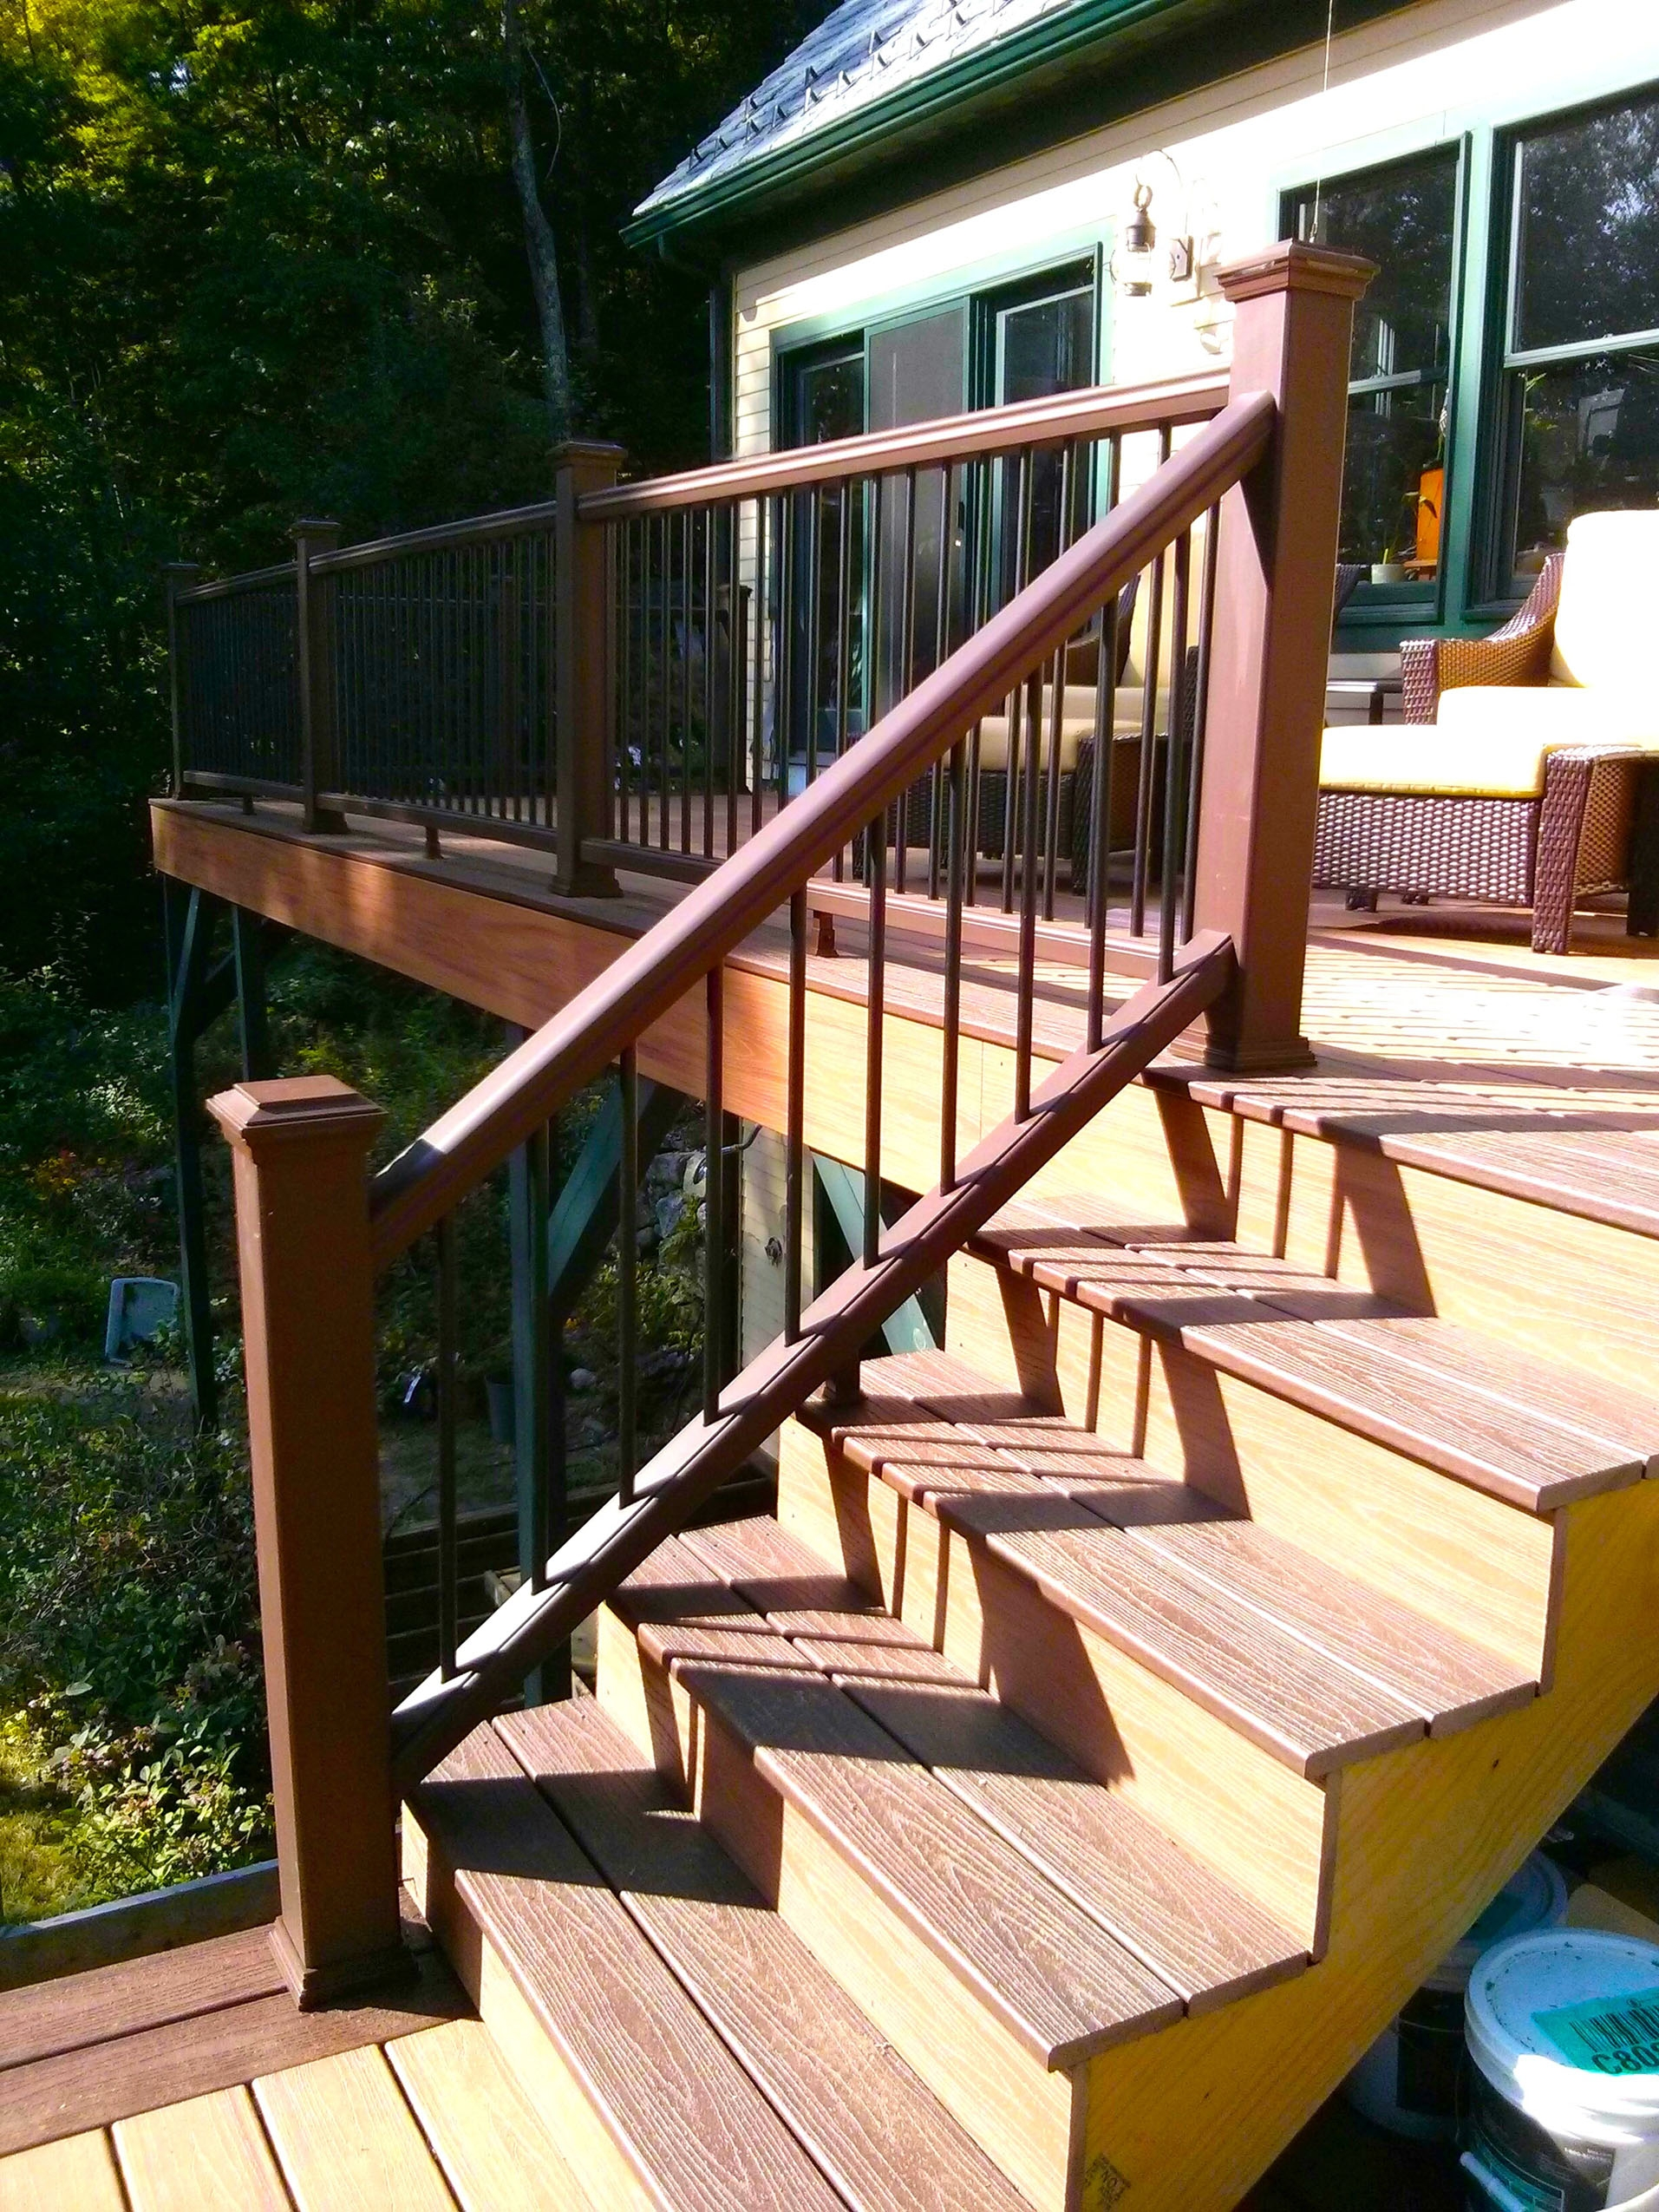 How To Build A Railing For Deck Stairs The Washington Post | Installing Deck Stair Railing | Outdoor Stair | Baluster | Railing Ideas | Stair Treads | Stair Stringers